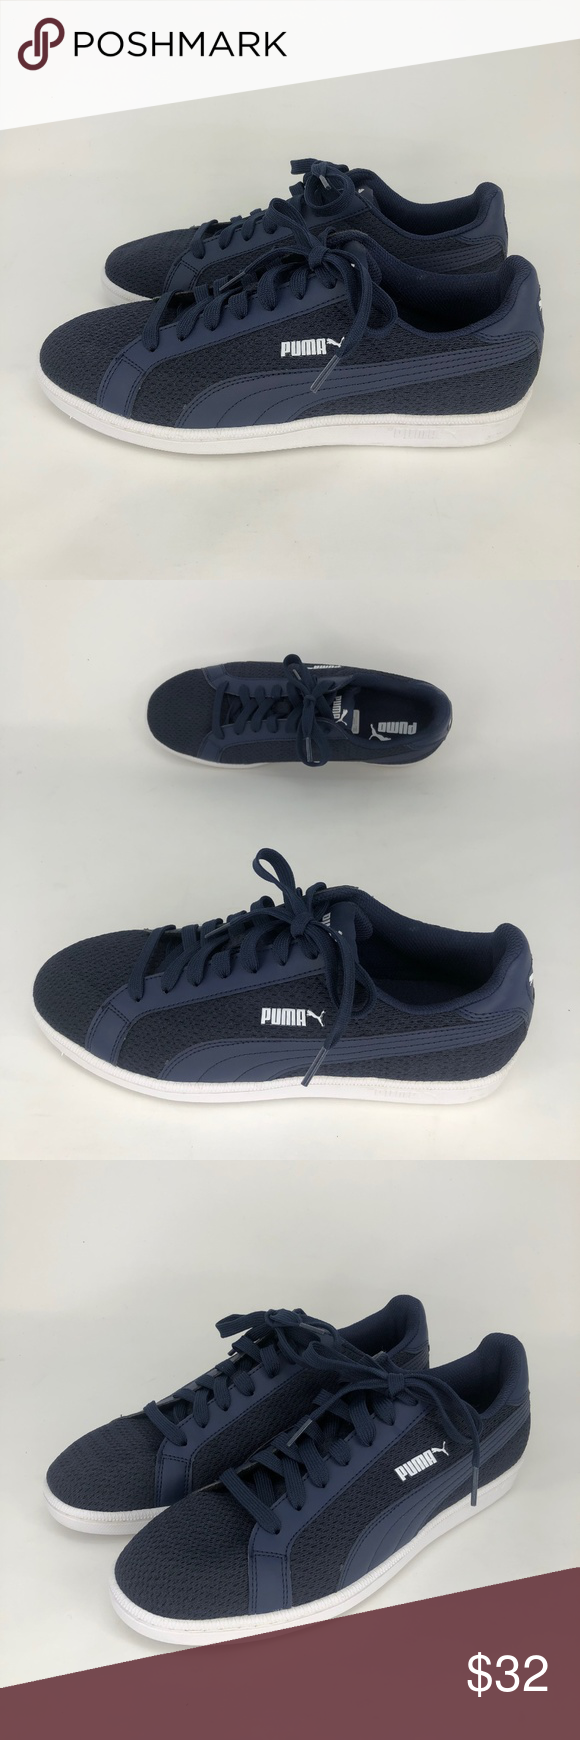 737367f831fd Puma Smash Knit Classic Casual Sneakers Navy Blue NEW Puma Smash Knit C  Men s Classic Casual Sneakers Dark Navy Blue Size 9.5 Textile and Synthetic  Imported ...